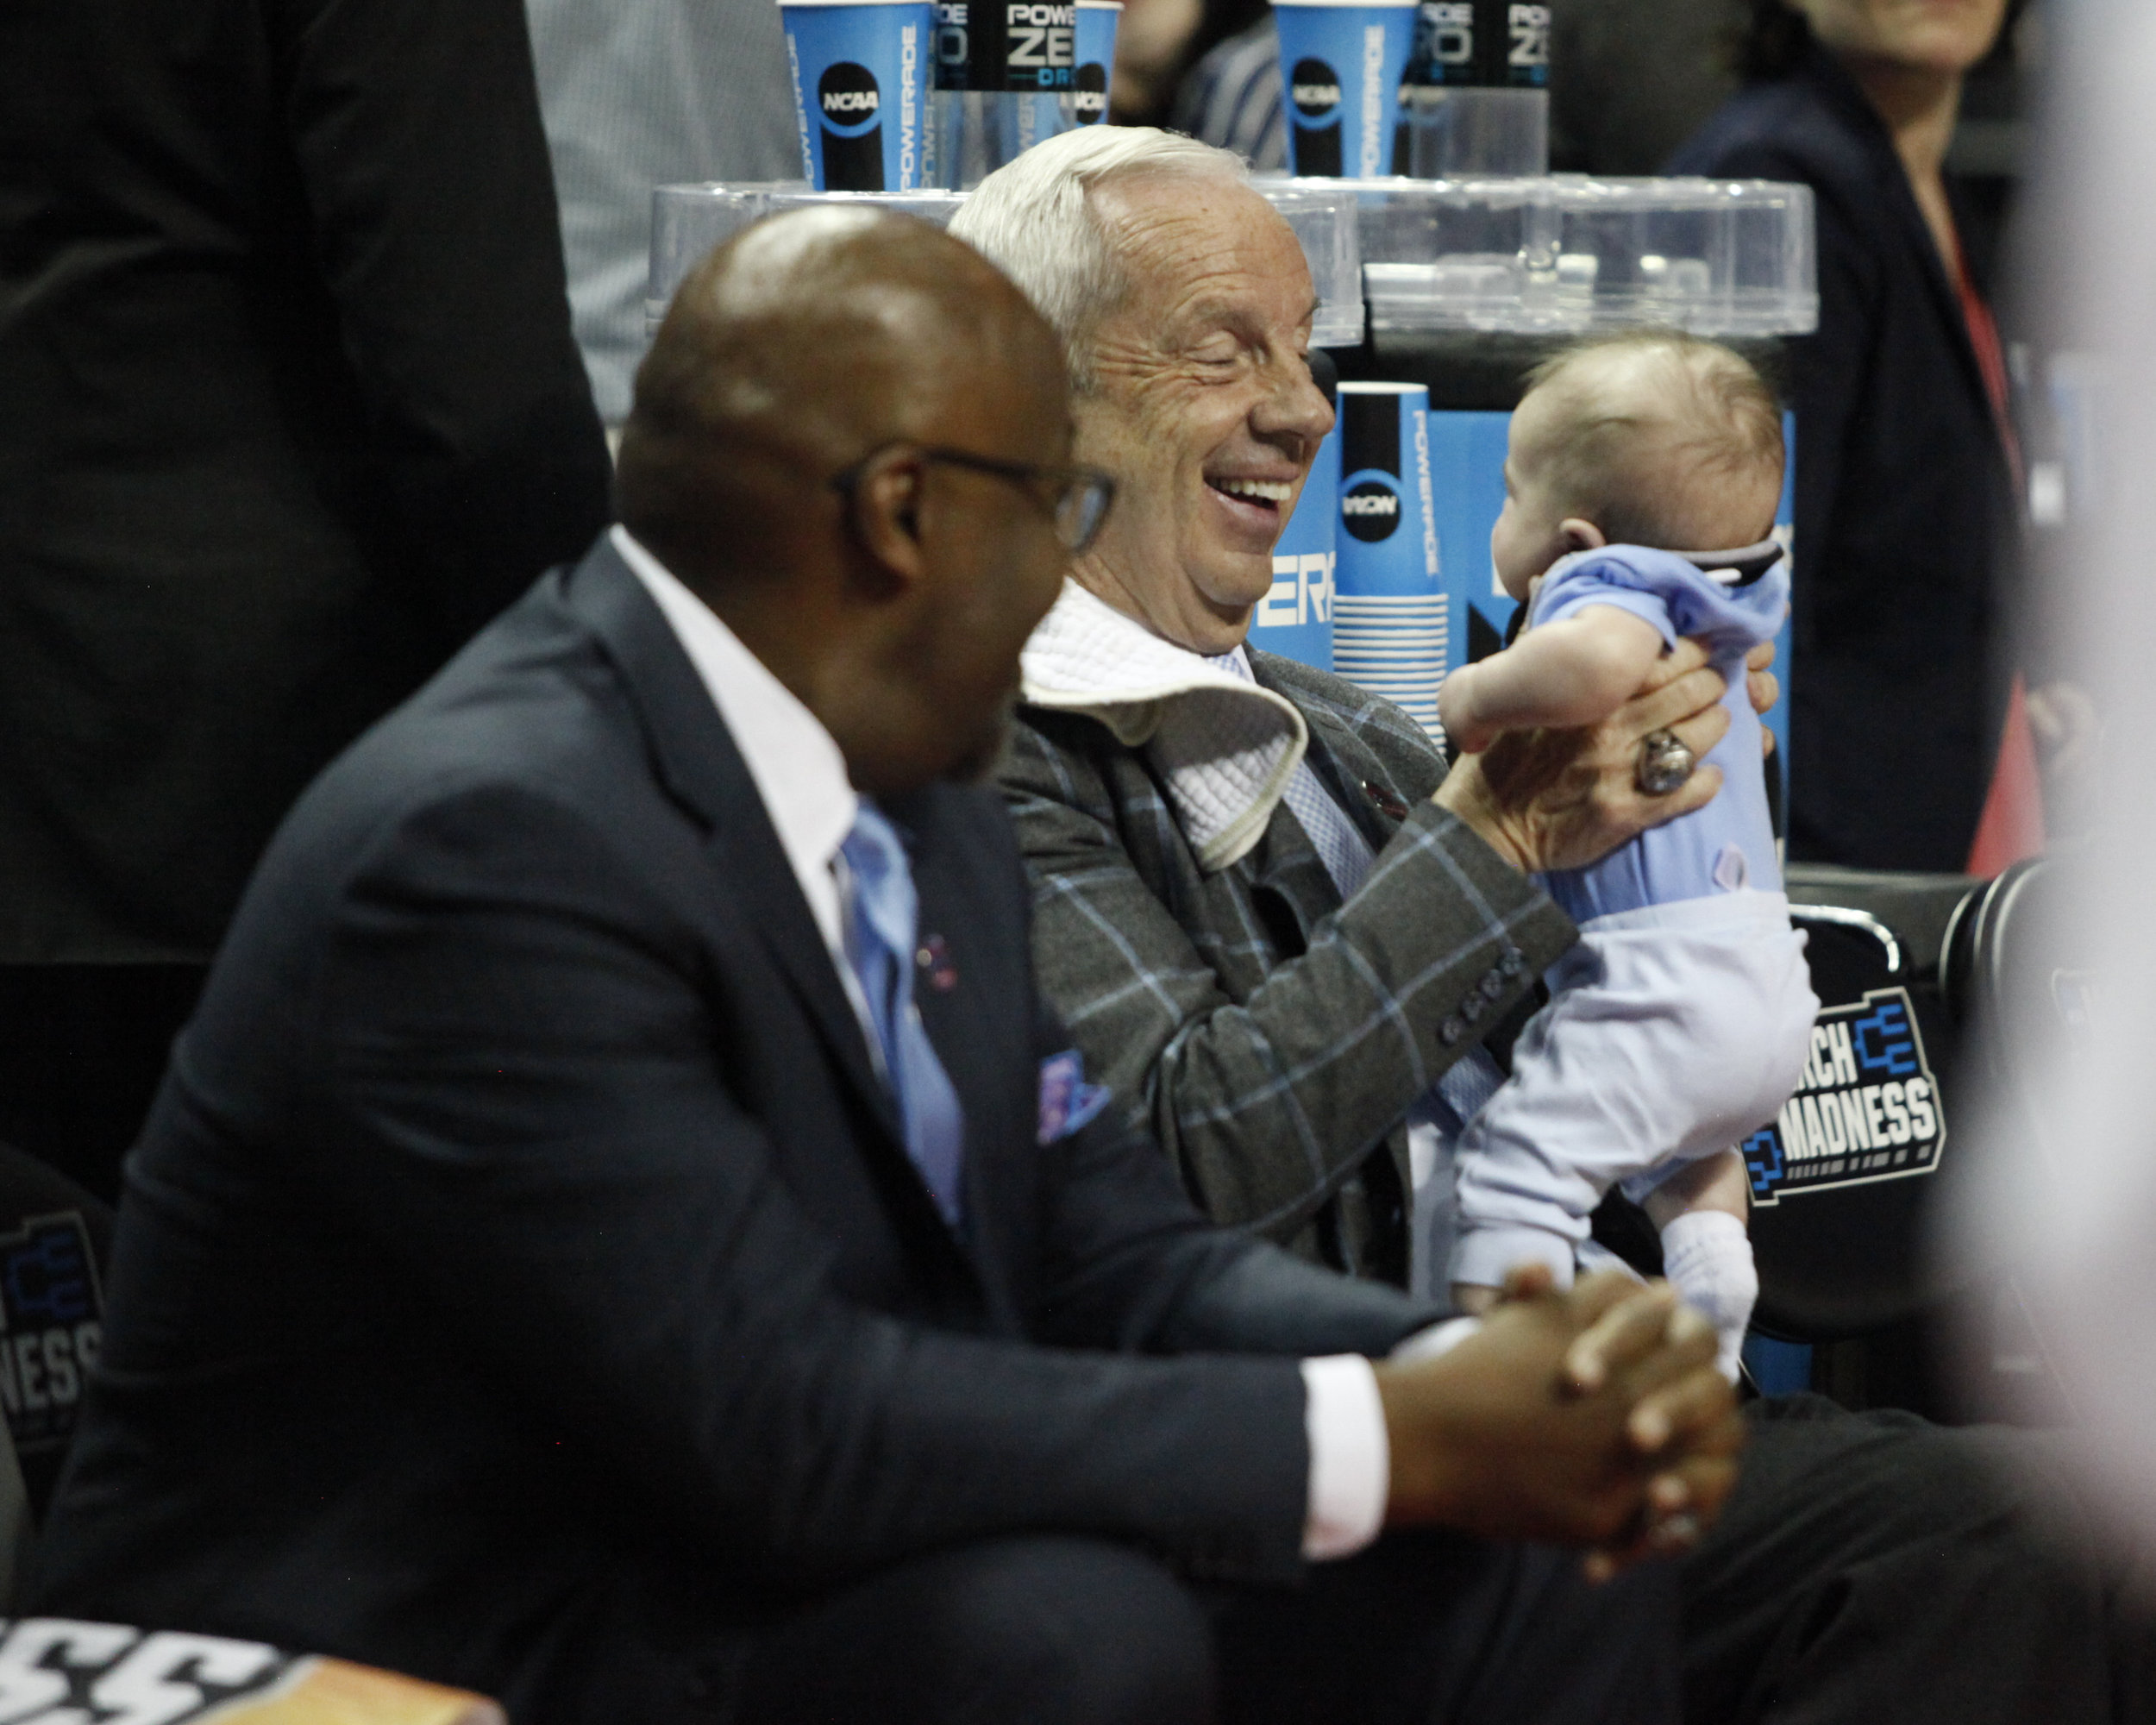 Coach Roy Williams smiles at his grandson Kayson Newlin before the game against Texas A&M.